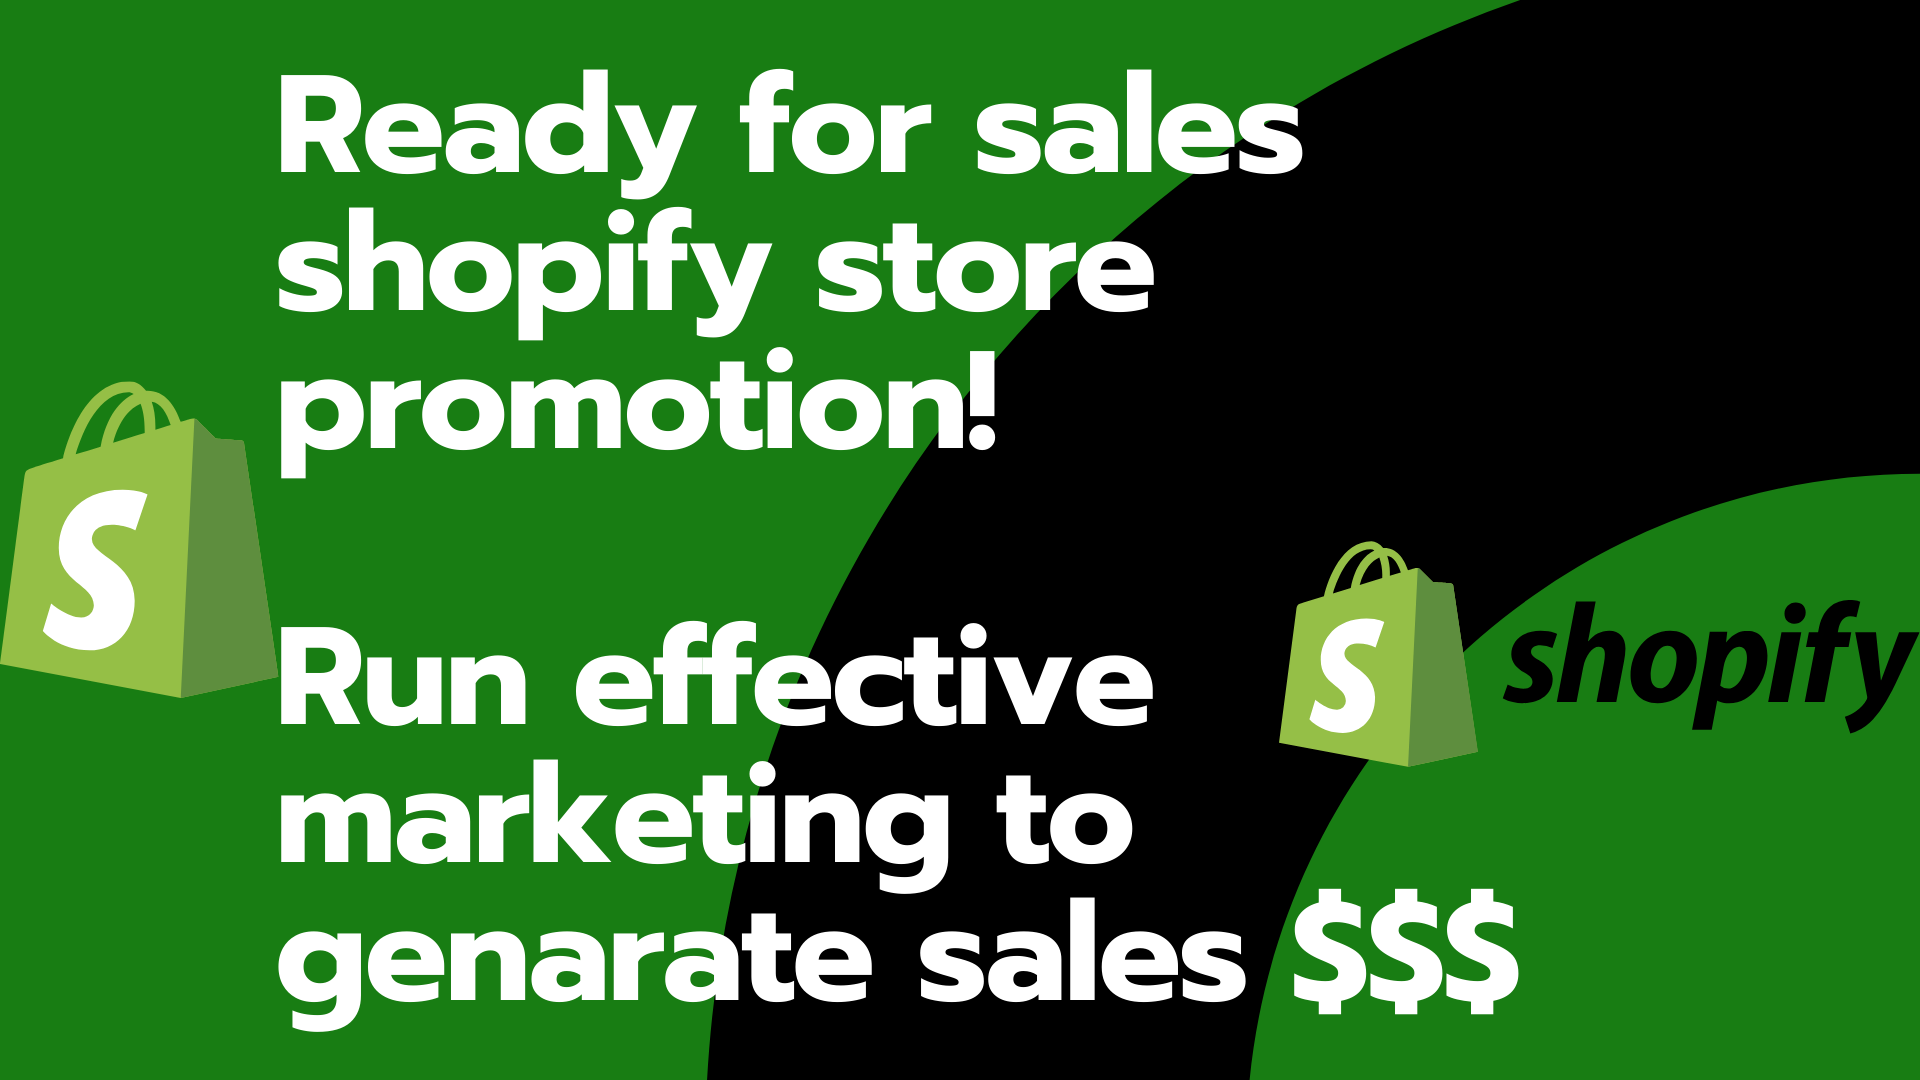 I will run active shopify promotion shopify marketing to generate sales, FiverrBox